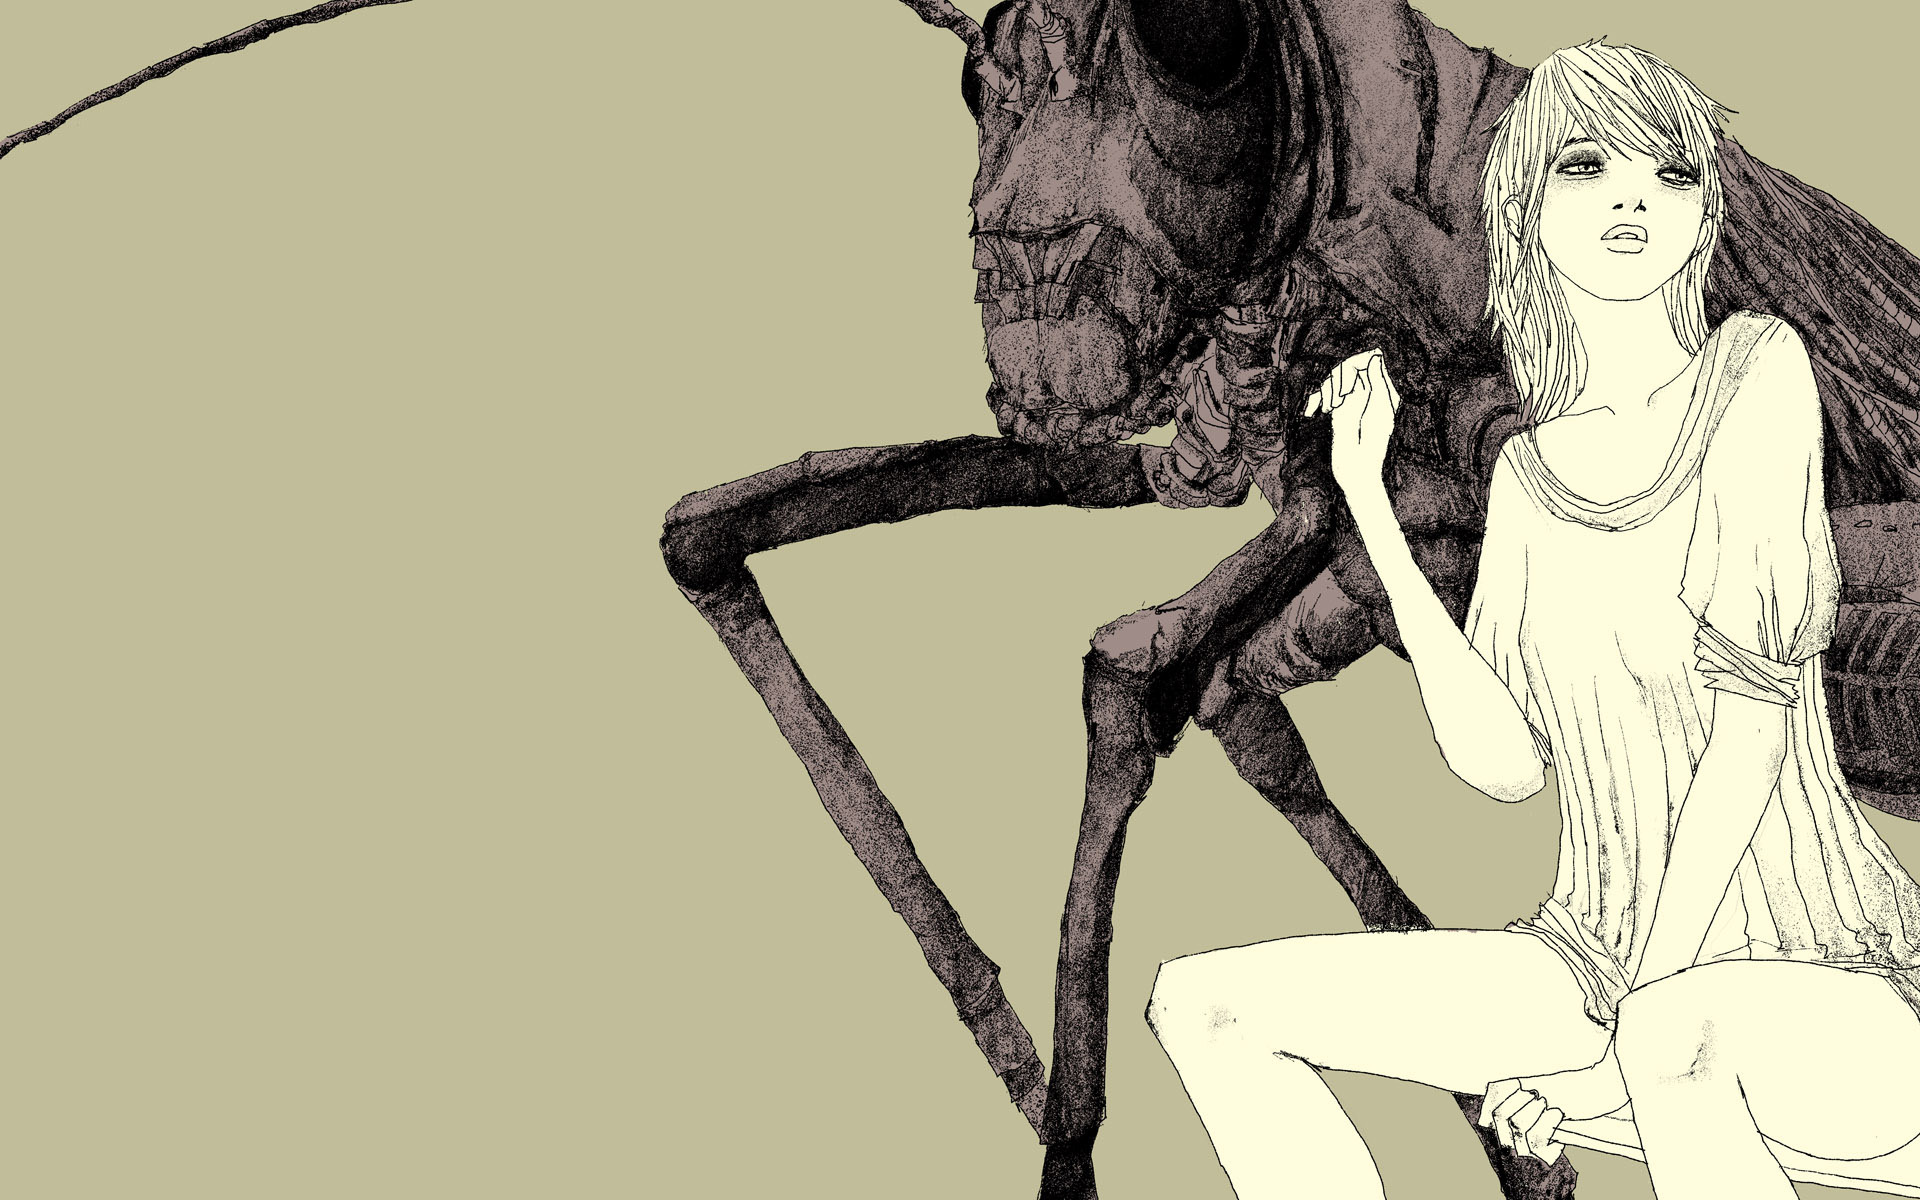 woman insects artwork drawings HD Wallpaper